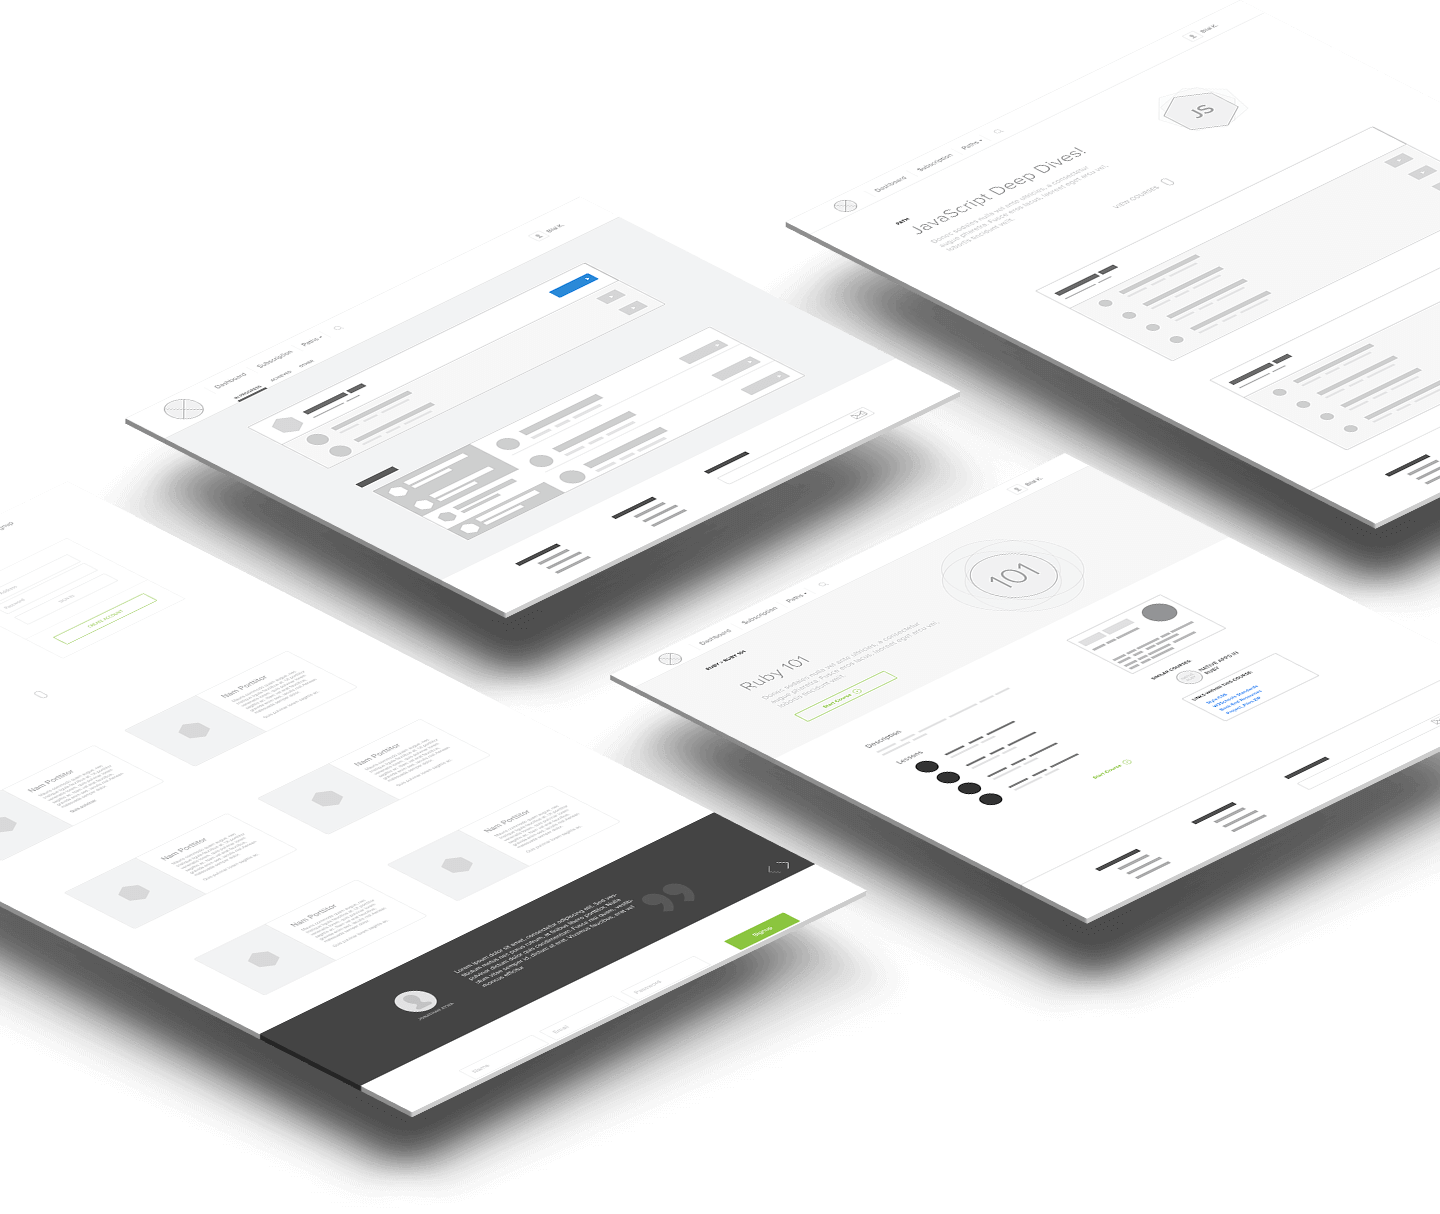 Wireframes (1) (1)